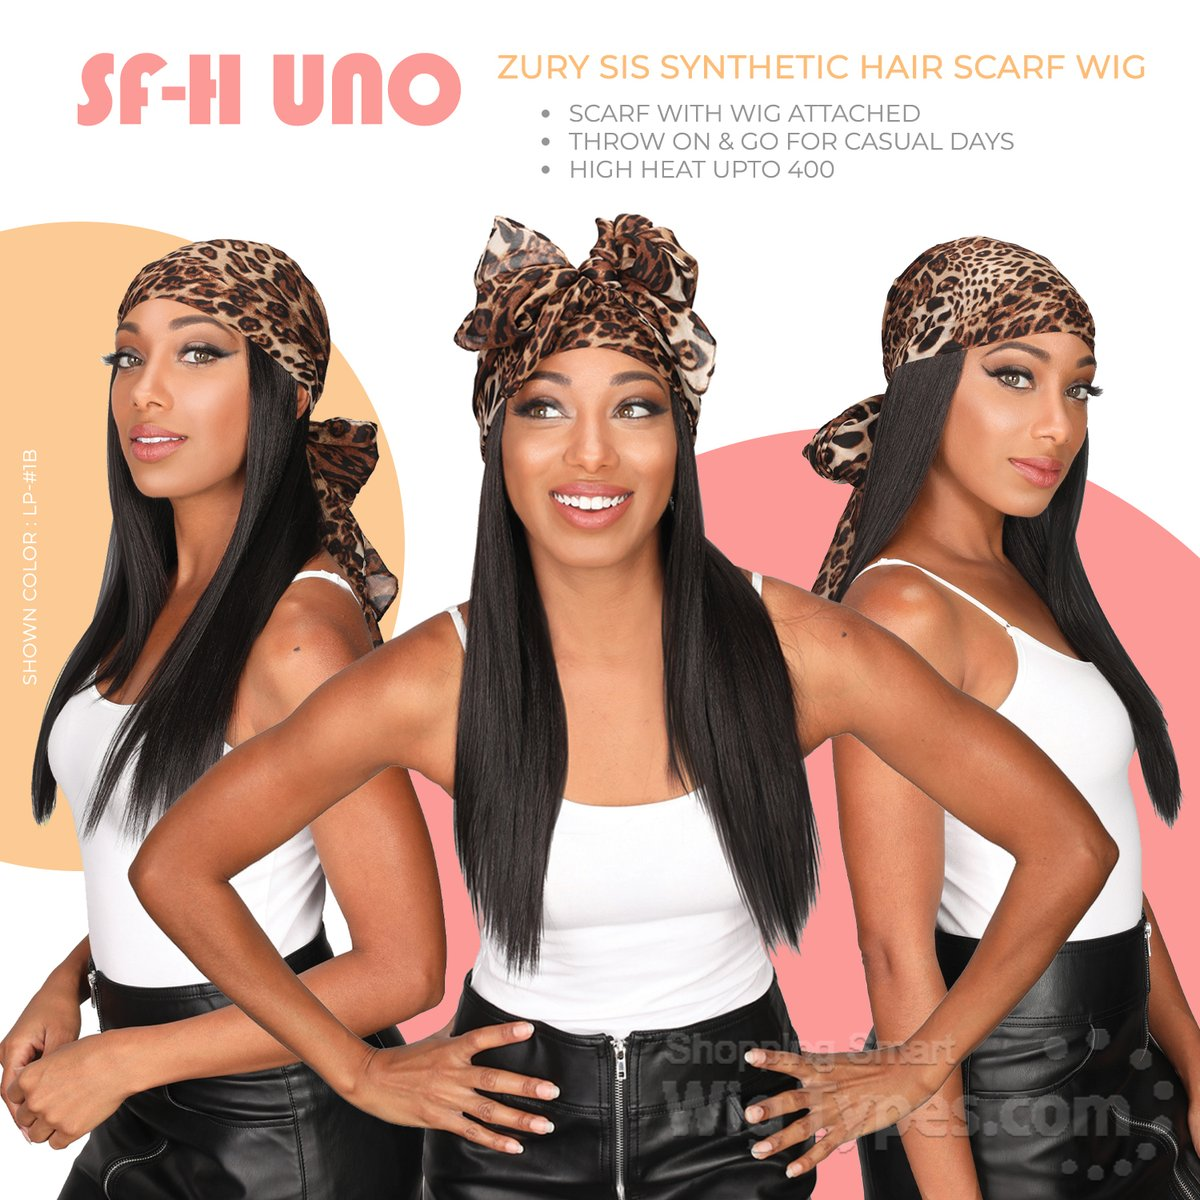 Zury Sis Synthetic Hair Scarf Wig - SF-H UNO (https://soo.nr/LNAq)  Shown Color : LP-#1B . . . . #wigtypes #wigtypesdotcom #trendywig #protectivestyles #blackgirlhair #blackgirlmagic #instahair #Longwigs #scarfwig #zurysis #scarfwithwigattached #sfhunopic.twitter.com/ZdxyiVqPuh